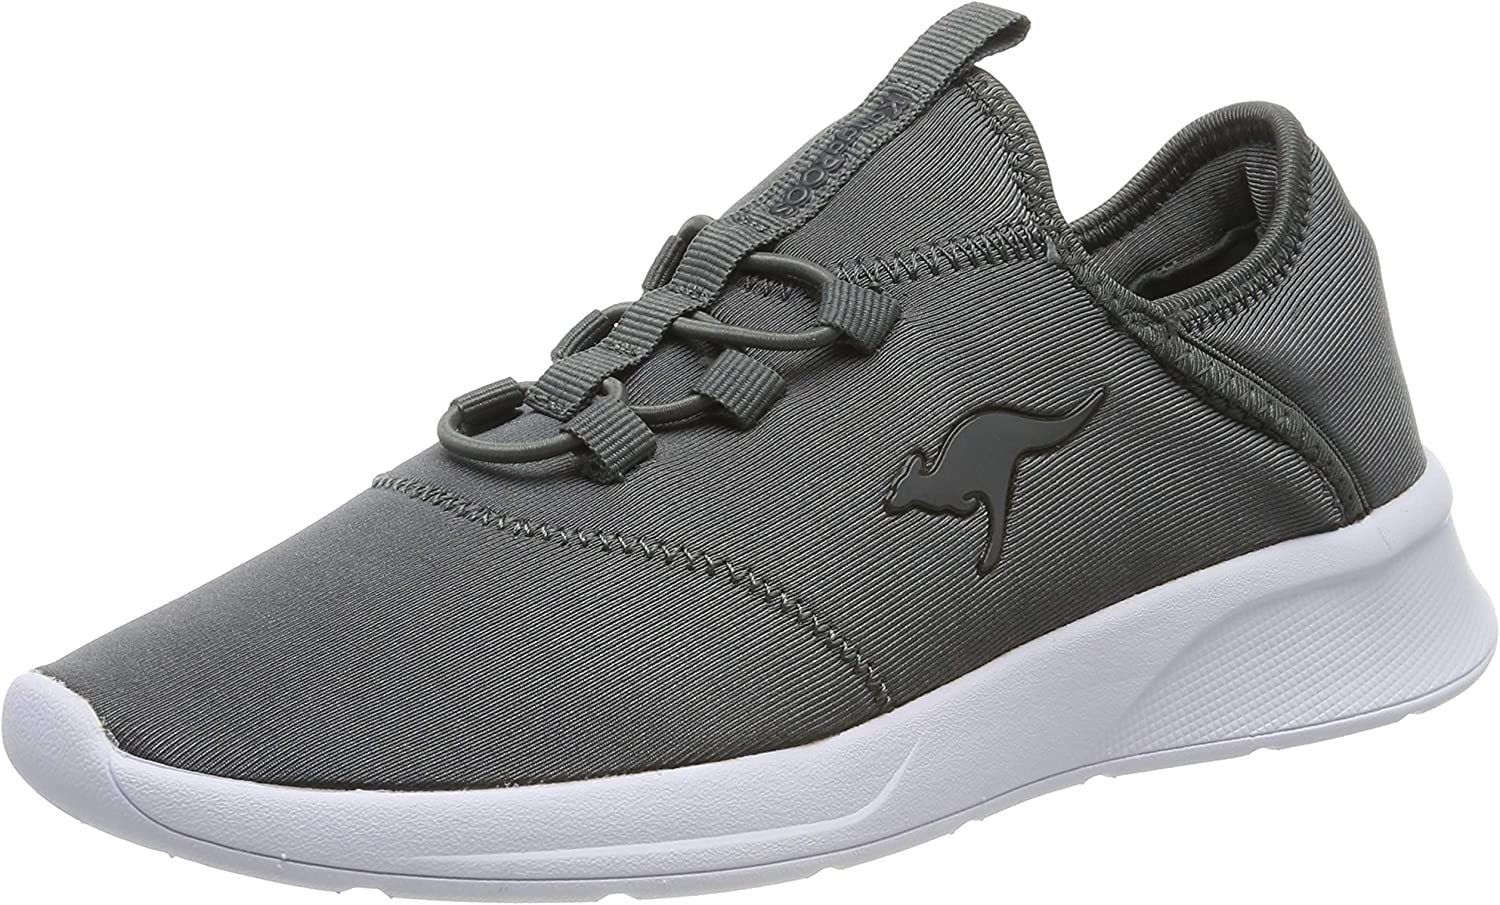 KangaROOS Women's Max 59% OFF Low-Top Sneakers Limited time cheap sale